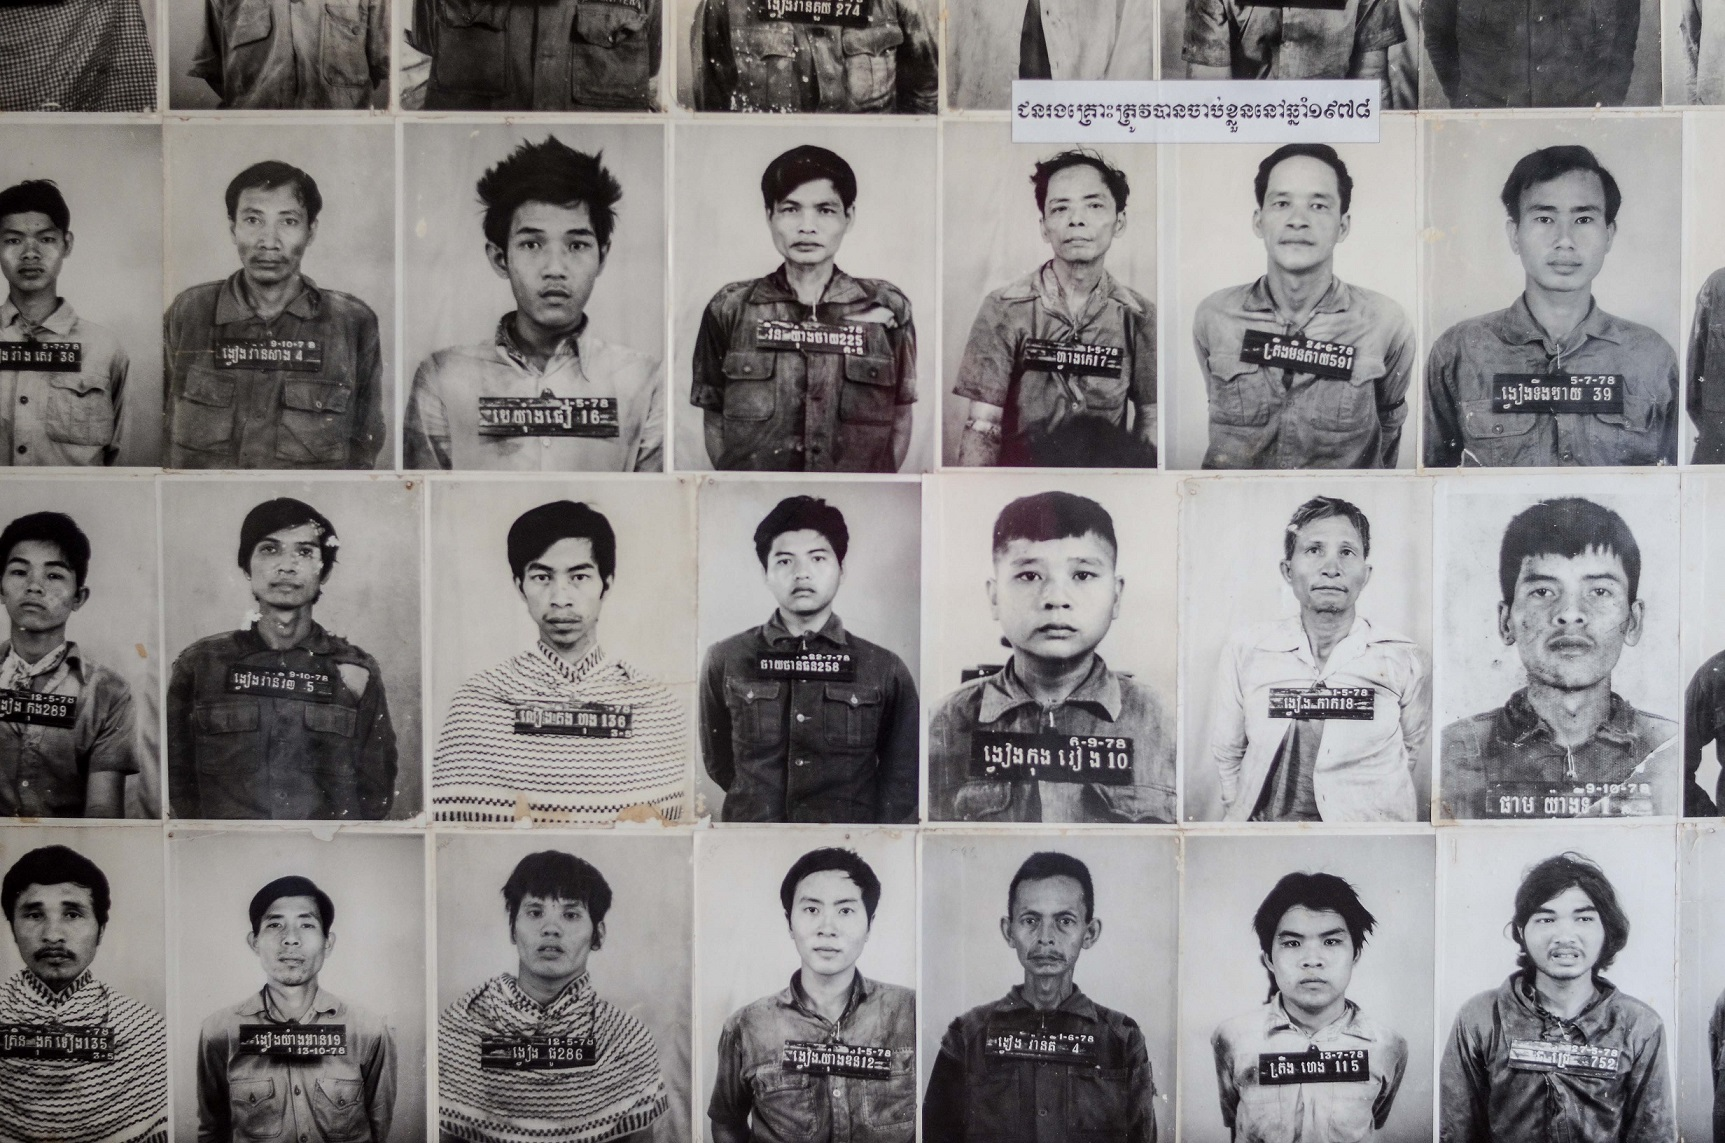 an introduction to the history of pol pot Introduction khmer rouge forces took over cambodia on 17 april 1975 they  forcibly  to return cambodians to their imagined origins, the pol pot group saw.